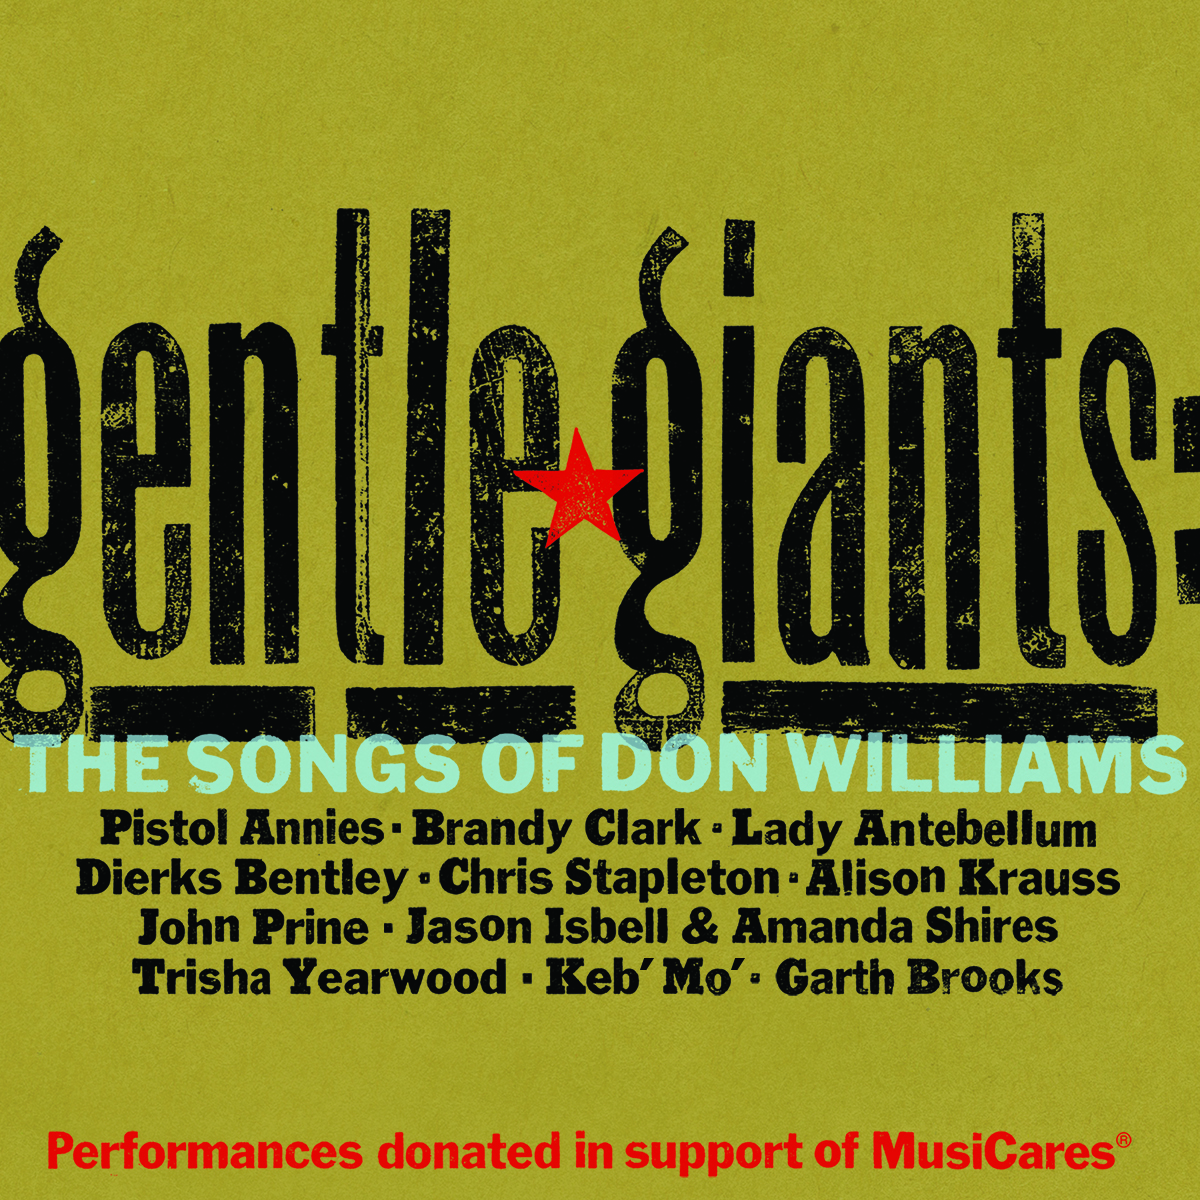 Gentle Giants: The Songs of Don Williams; Cover art courtesy Essential Broadcast Media